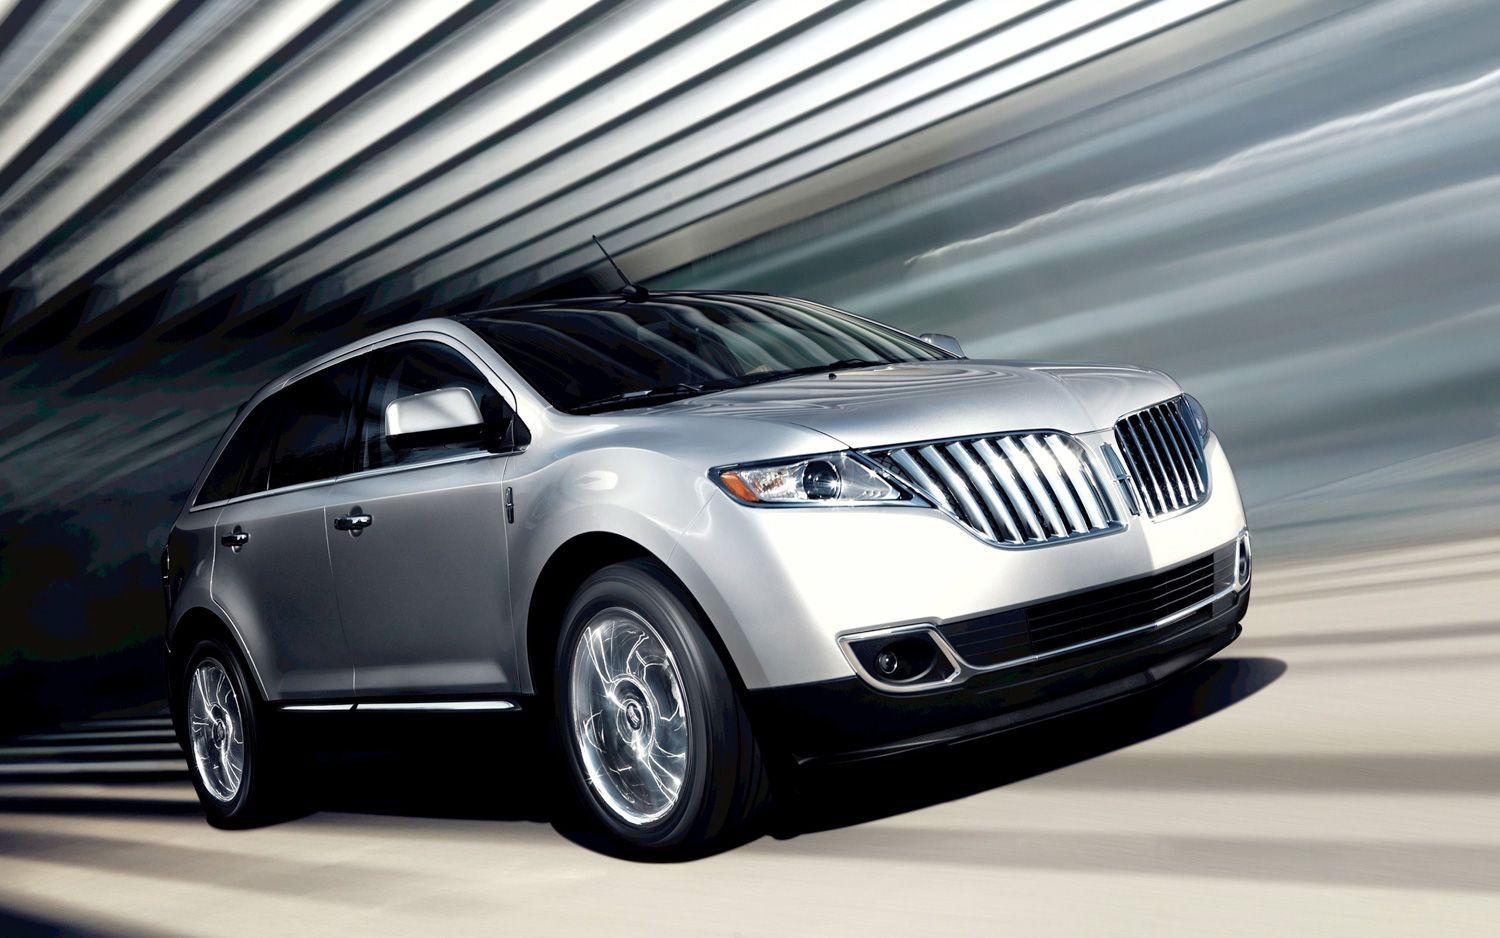 2018 lincoln mkx grill 2018 lincoln mkx grill the 2018 lincoln mkx is a top quality and exquisite auto that is foreseen to enter pinterest cars